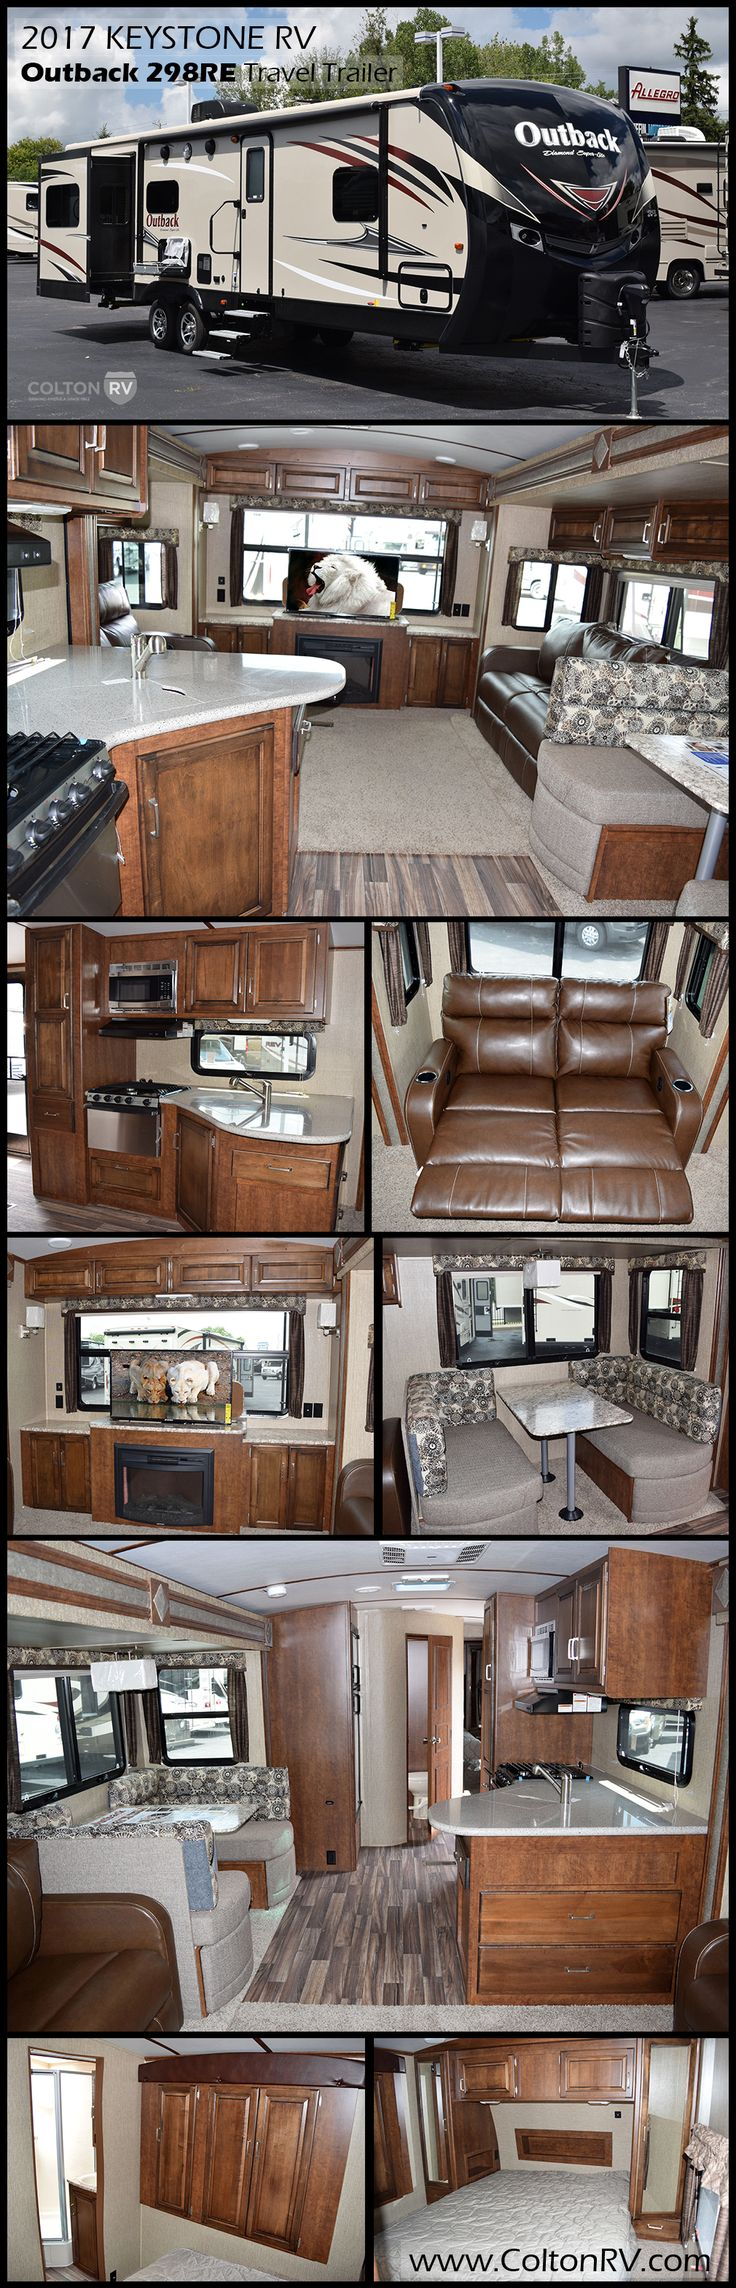 The KEYSTONE RV OUTBACK DIAMOND SUPER LITE 298RE Travel Trailer offers a spacious retreat while you camp. The Outback takes comfort and style to a whole new level. Vaulted ceilings and upgraded furniture provide a roominess and sophistication unseen in other light weight trailers. This one features a rear entertainment area with loads of space because of dual opposing slides in the living area.